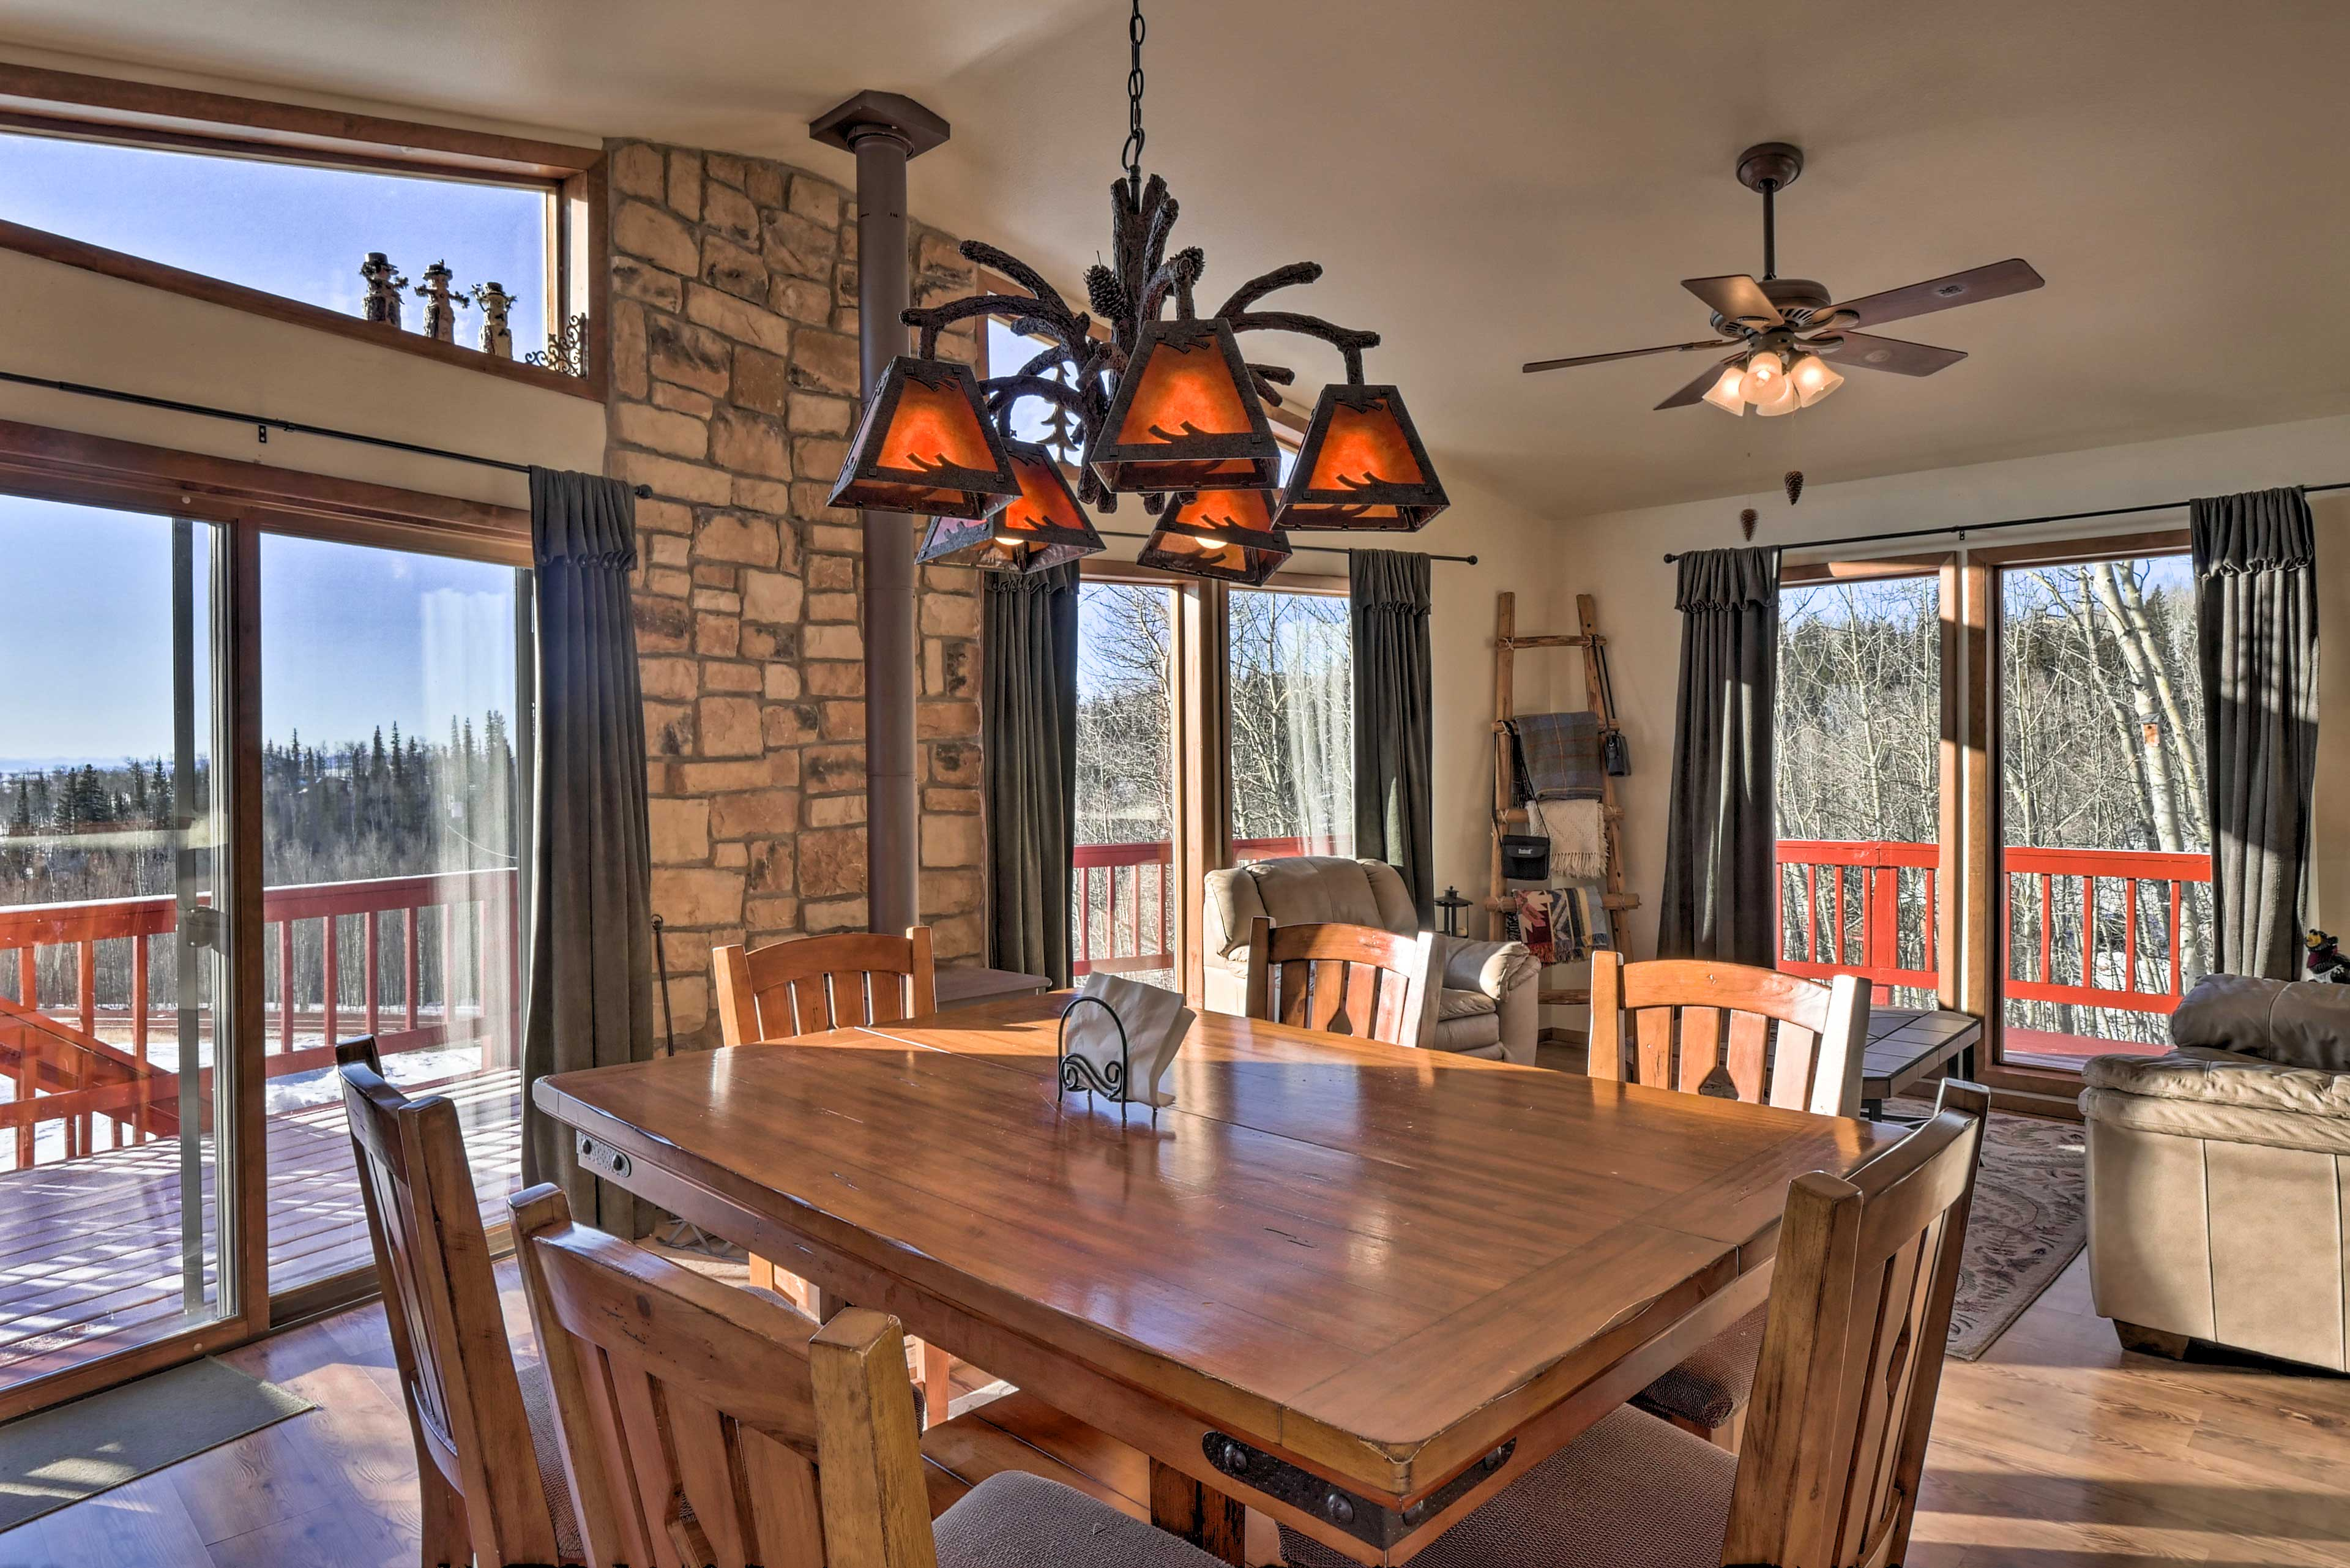 The vacation rental cabin is an ideal mountain escape.